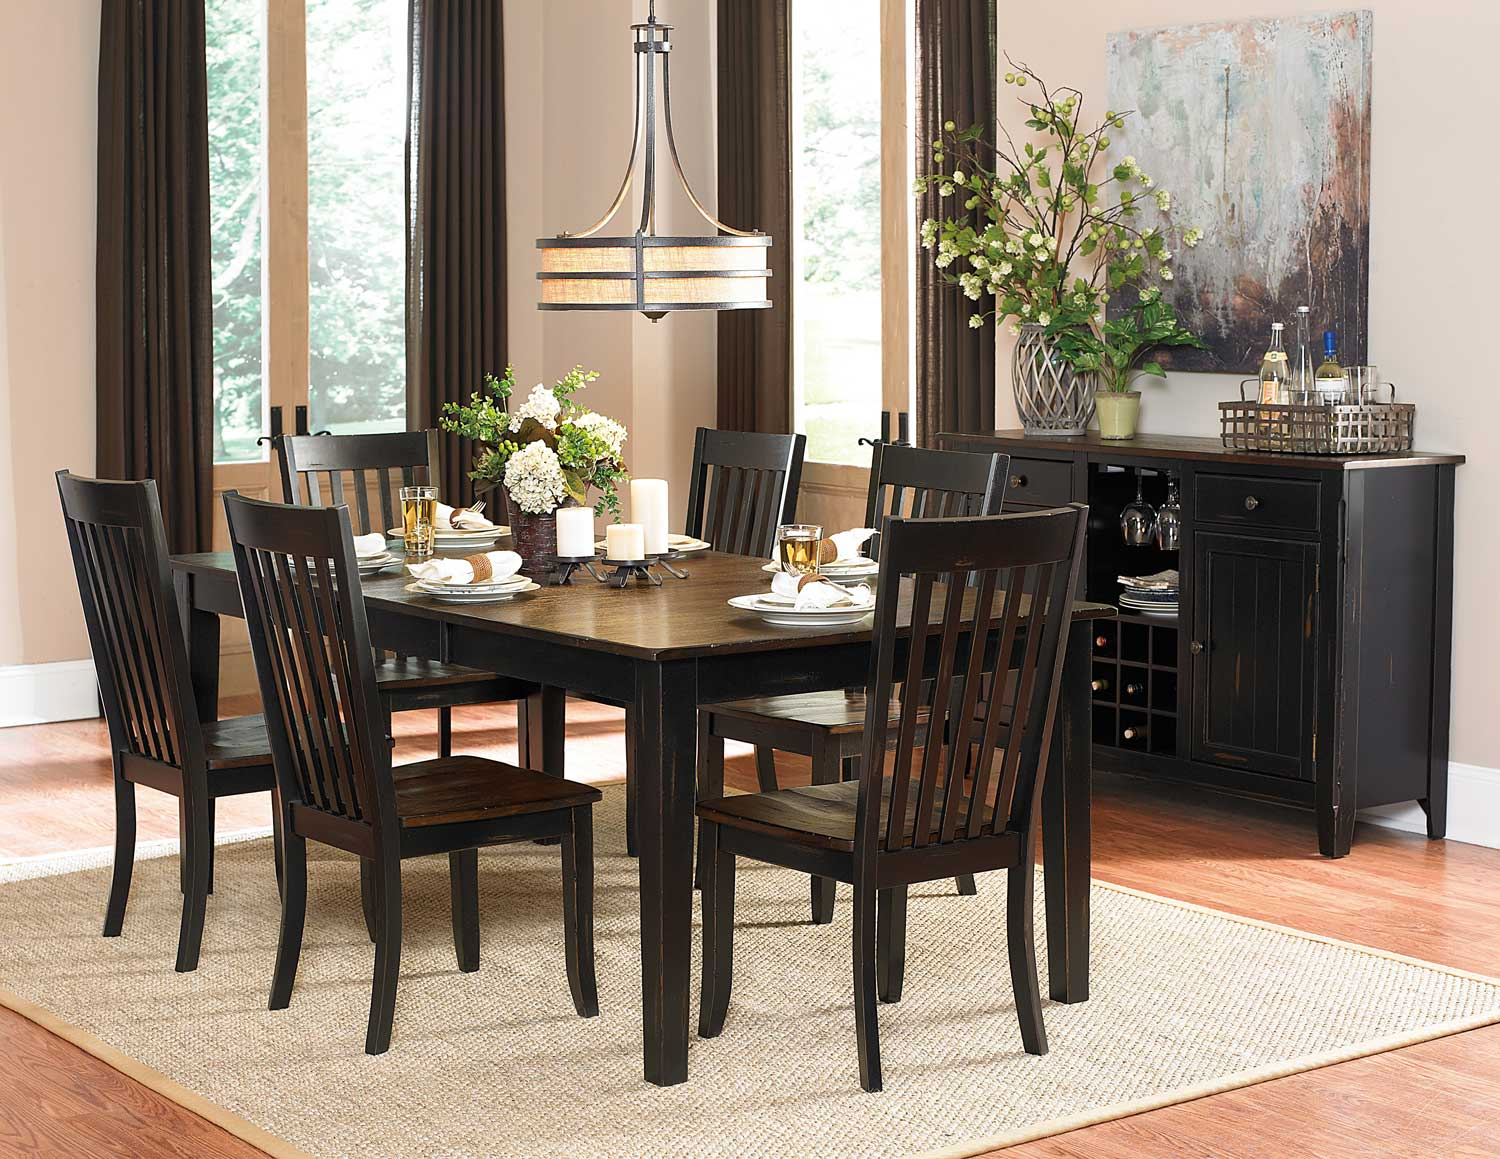 Homelegance Three Falls Rectangular Dining Set - Two Tone Dark Brown/Black Sand